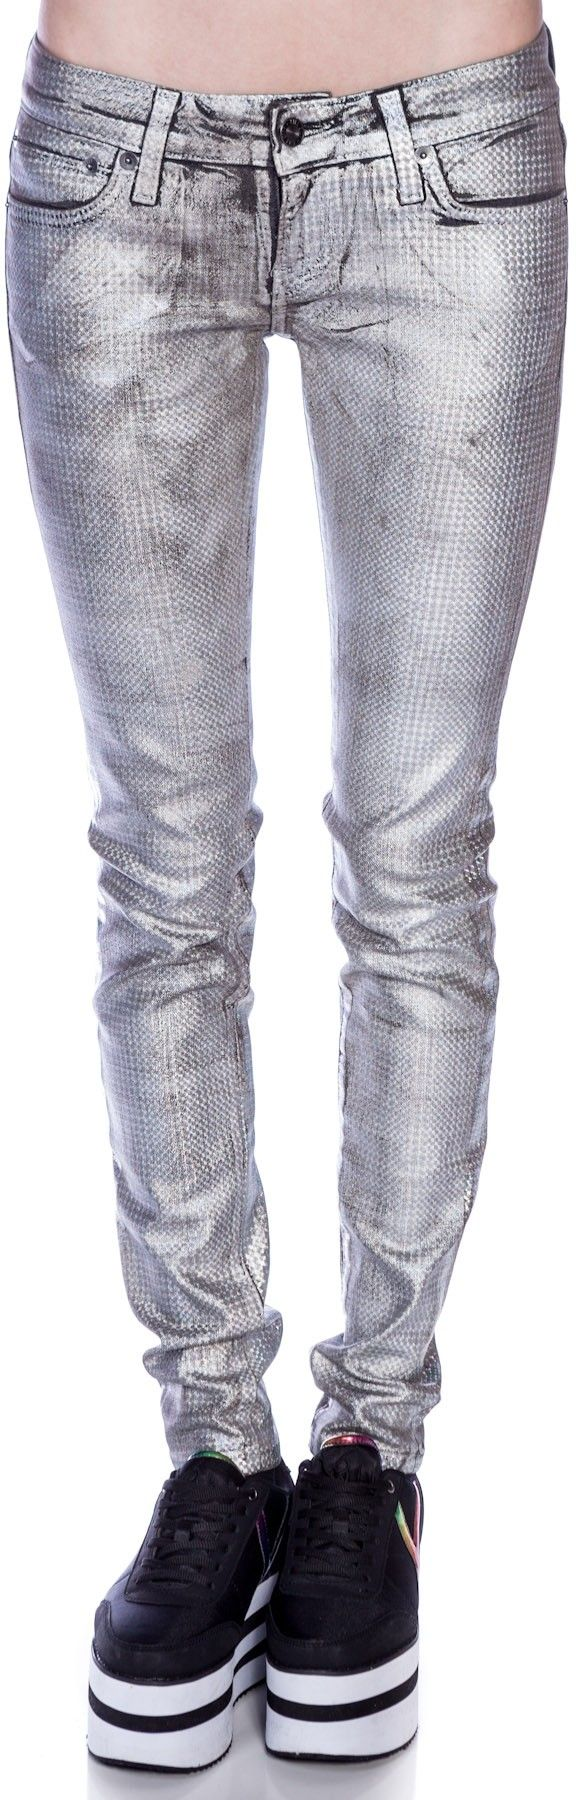 Kill City Junkie Pyramid Holographic Foil Pants | Dolls Kill